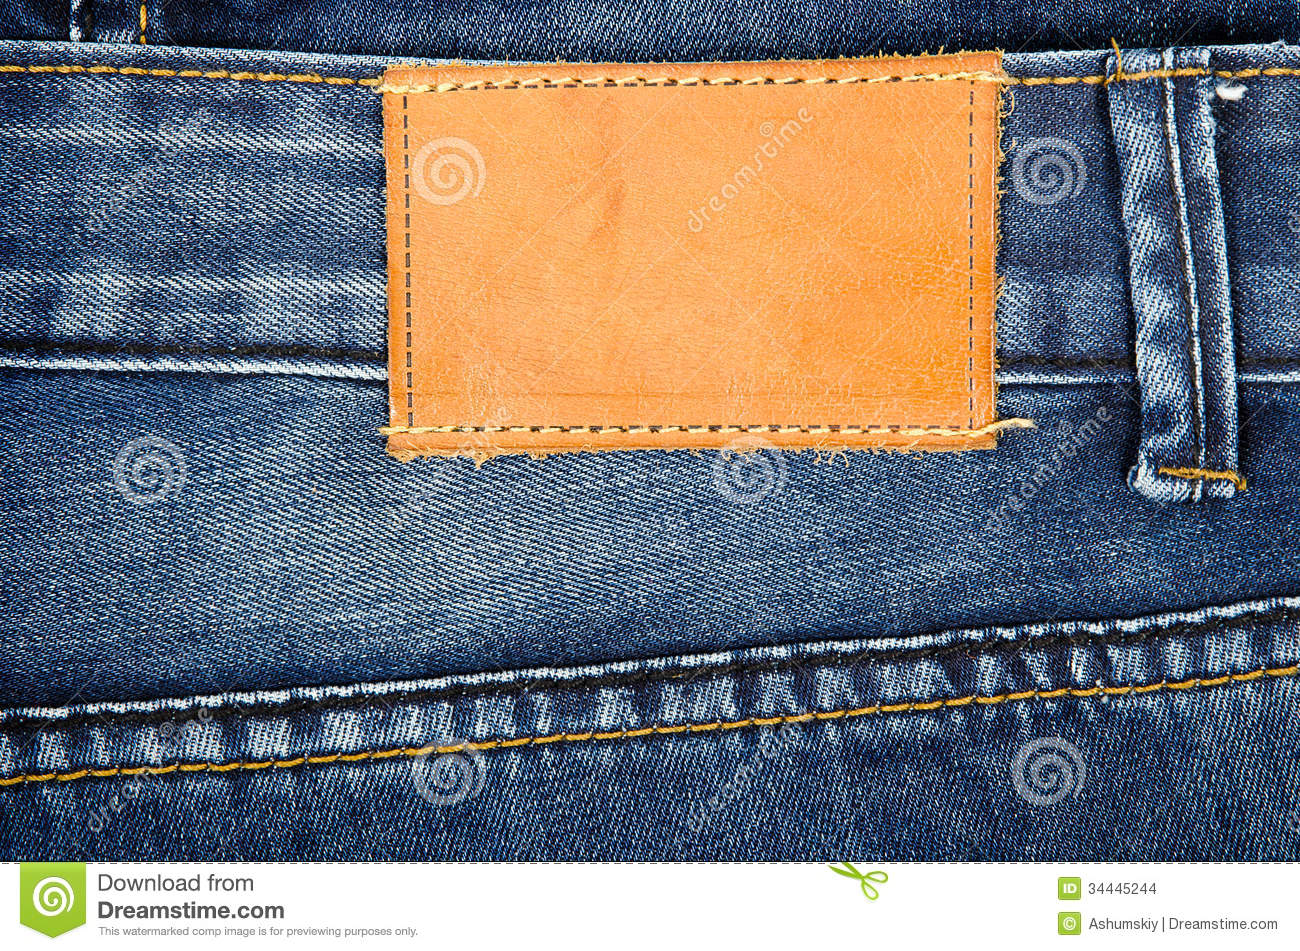 Leather Jeans Label Sewed On Jeans Stock Images  Image